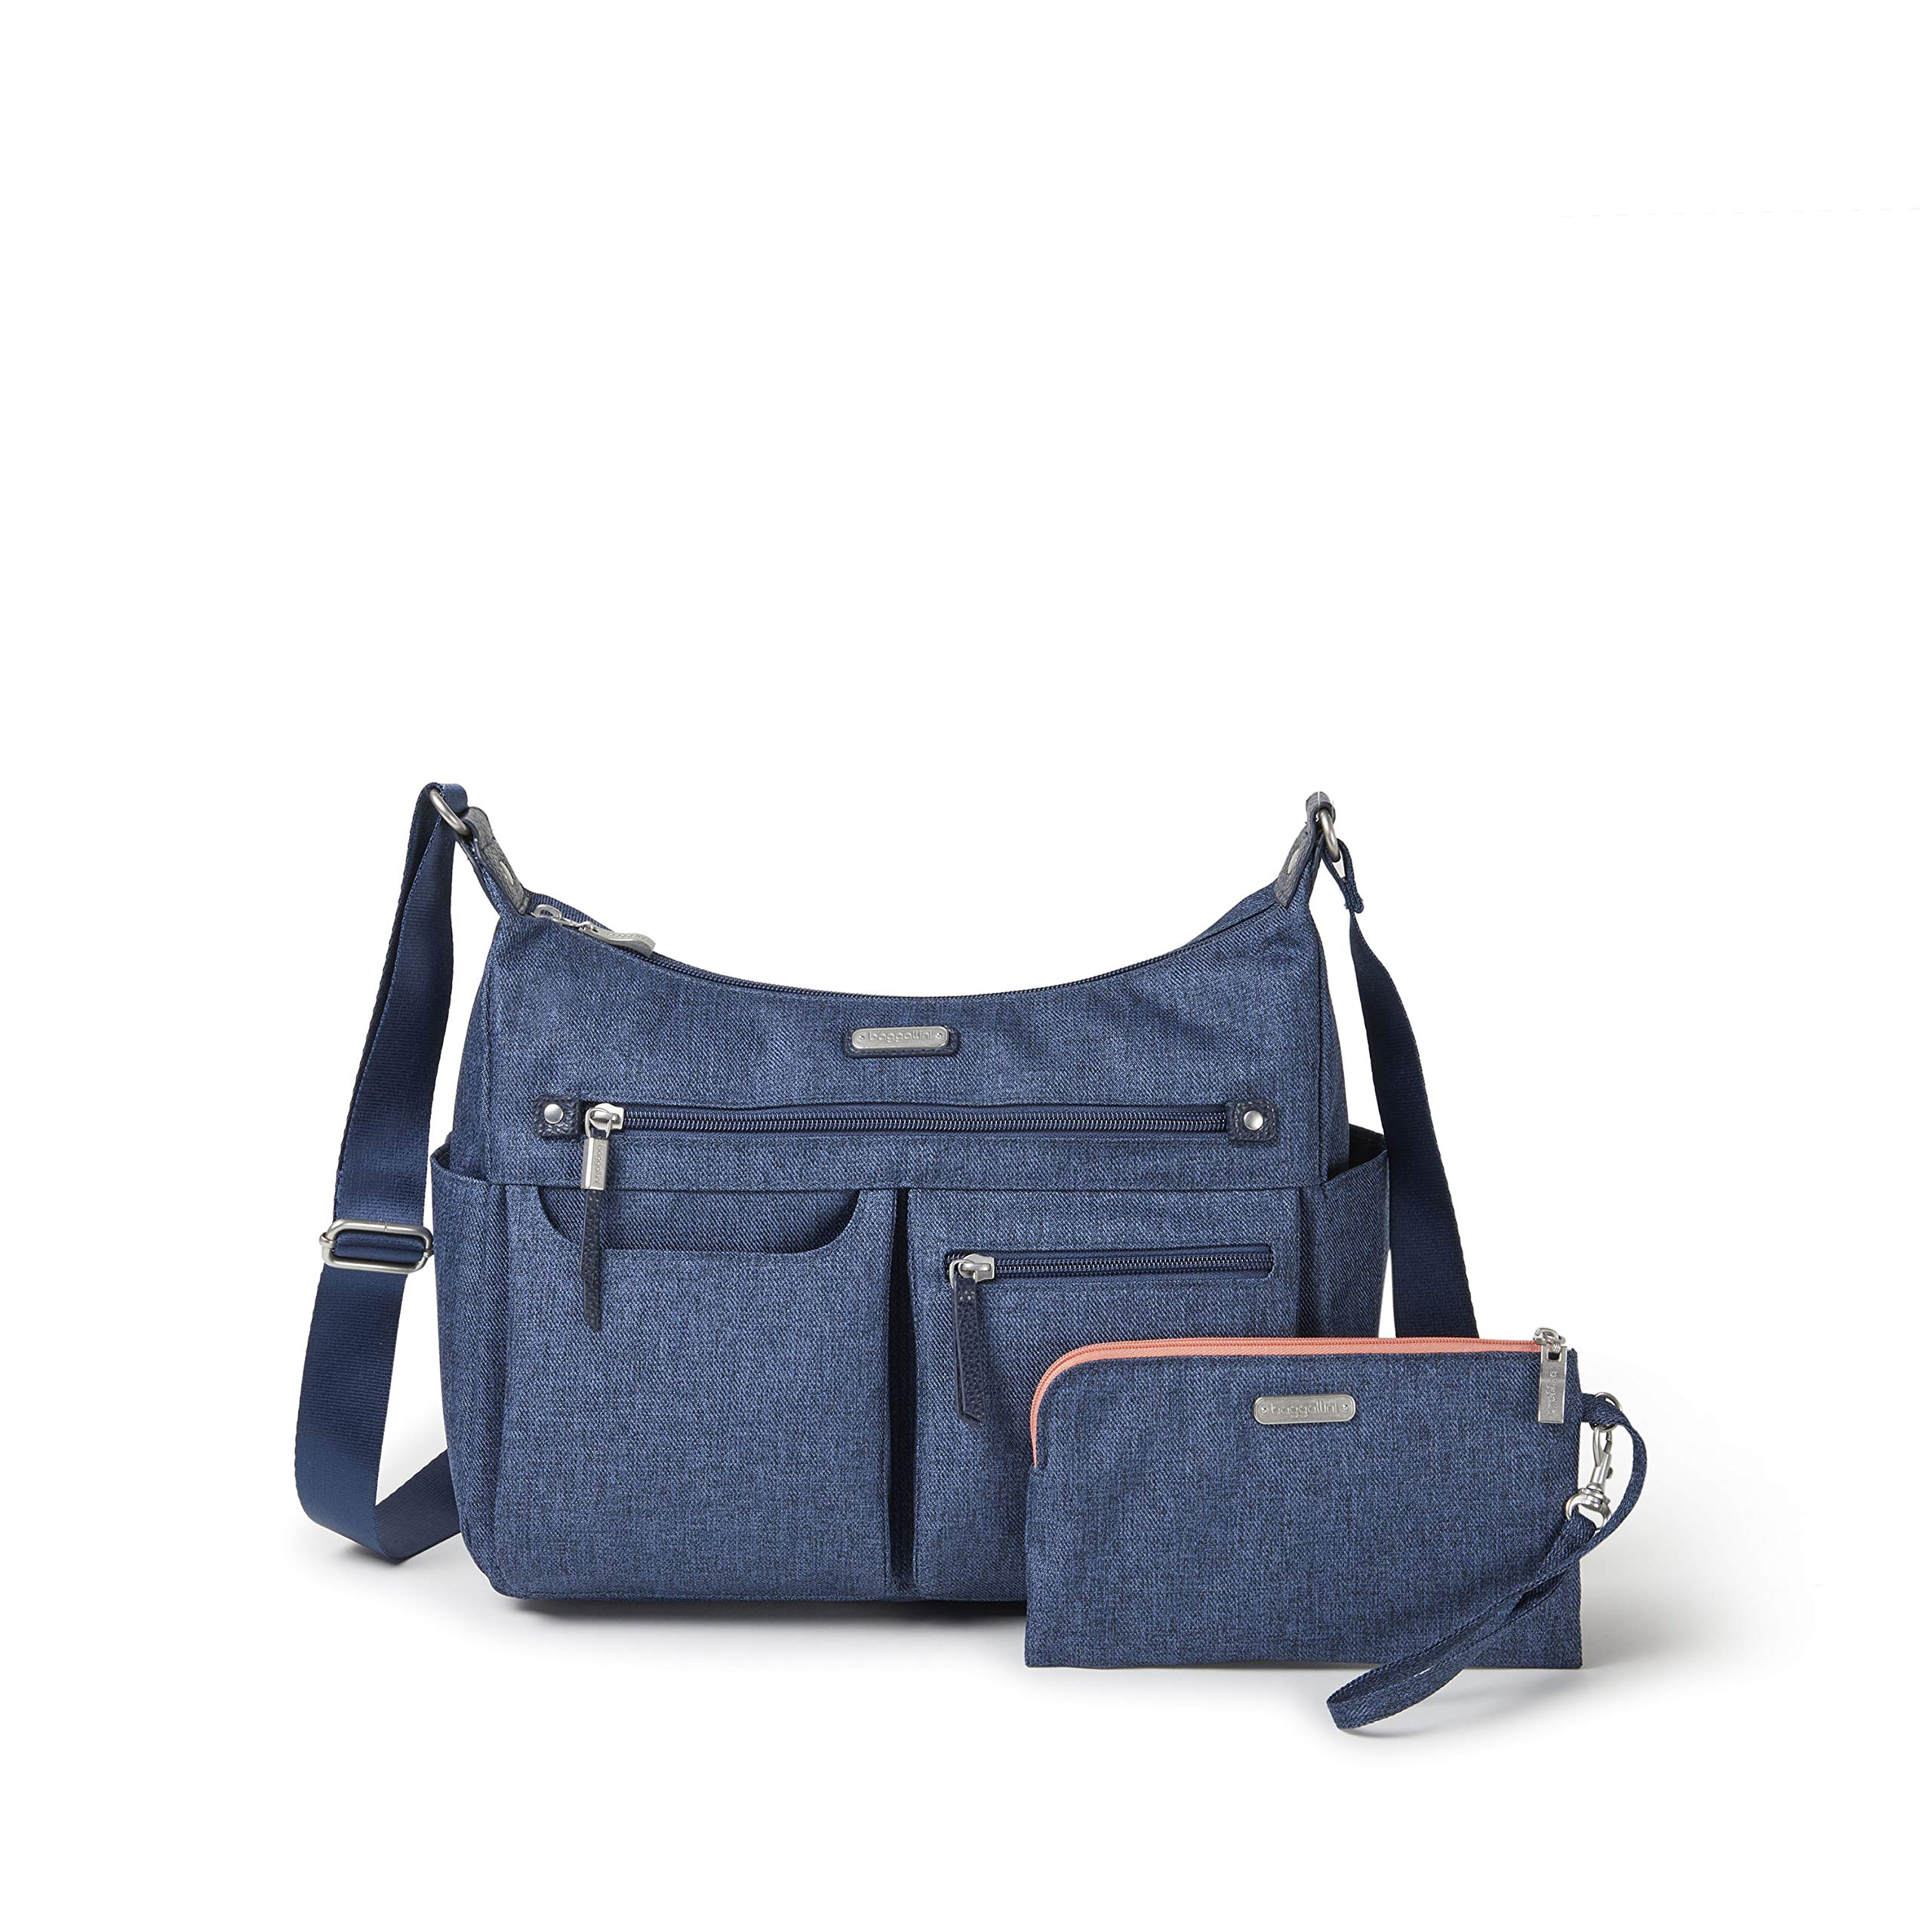 Baggallini Women's New Classic''Heritage'' Anywhere Large Hobo with RFID Phone Wristlet Steel Blue One Size